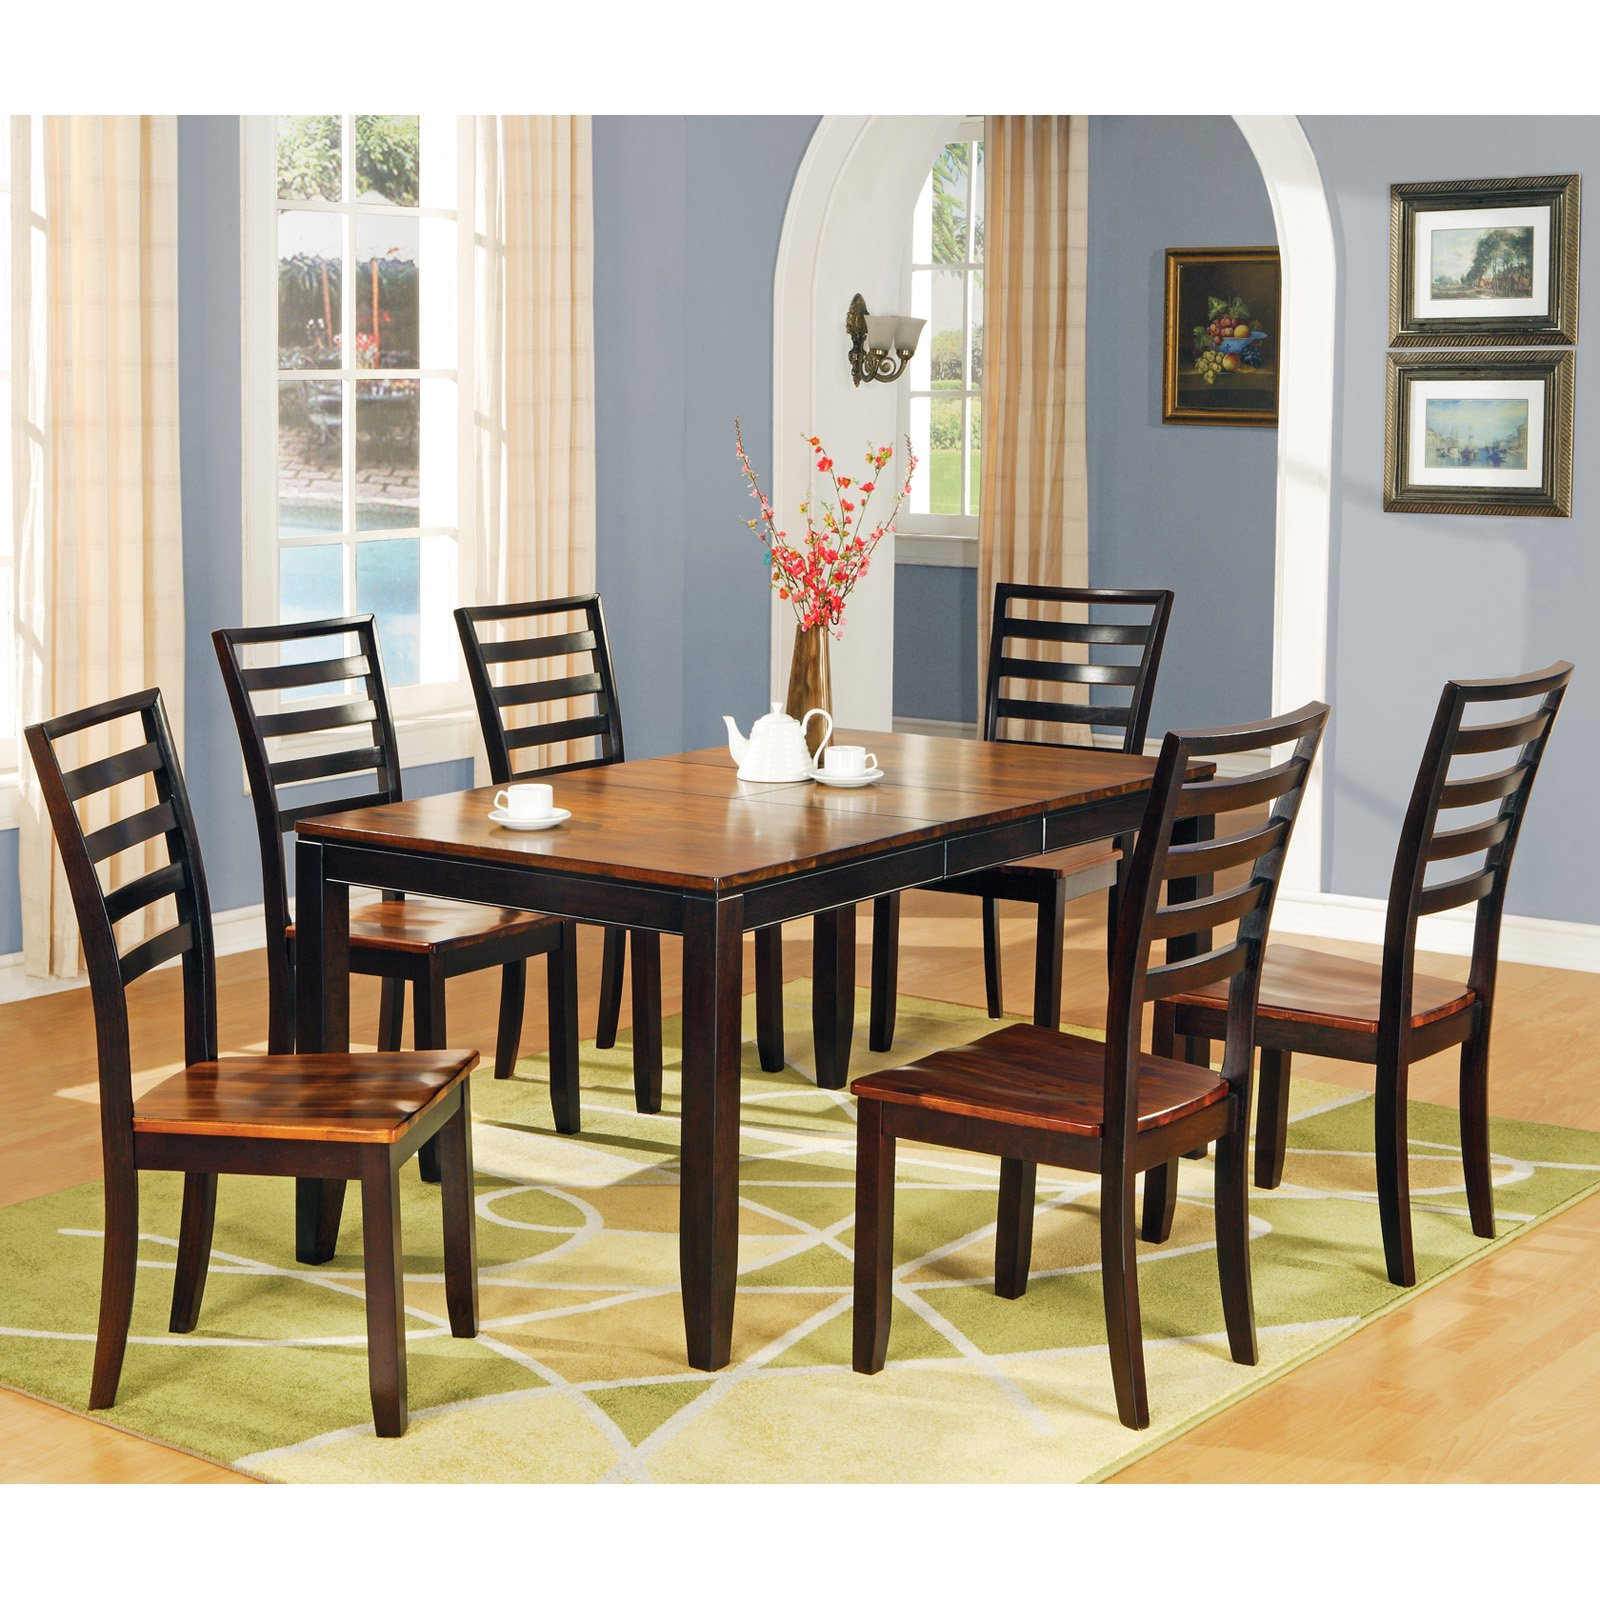 Steve Silver Abaco 7-Piece Dining Table Set by Steve Silver Co